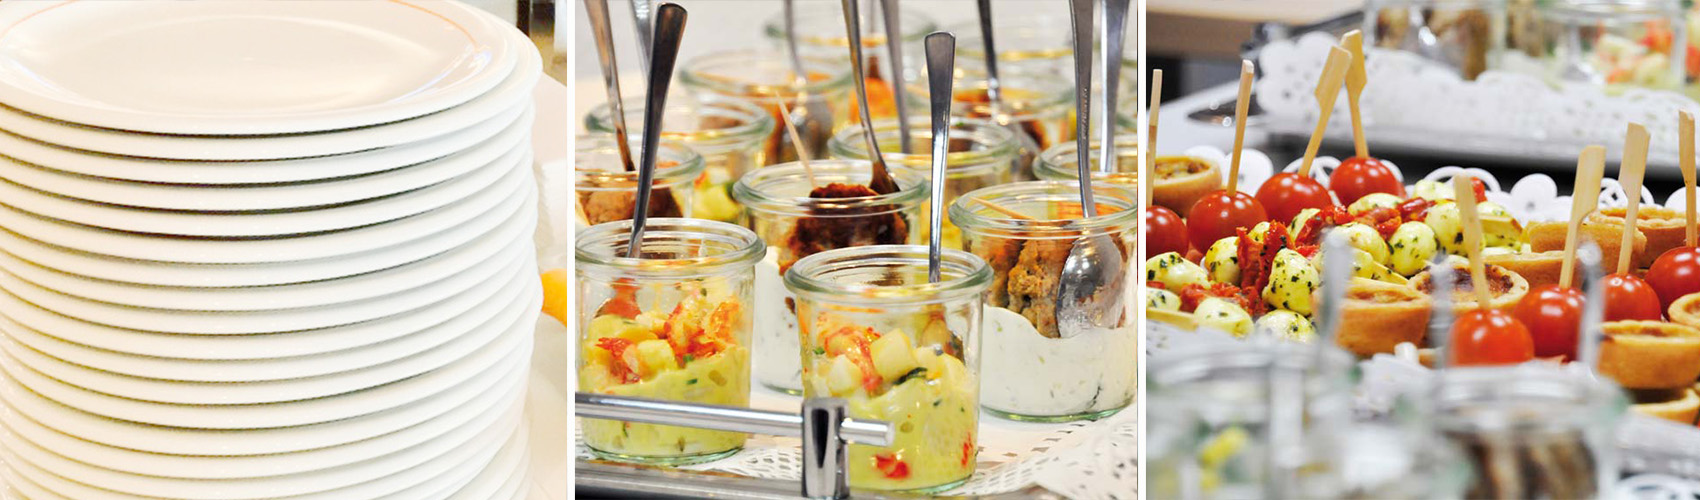 Service-Catering-und-Partyservice